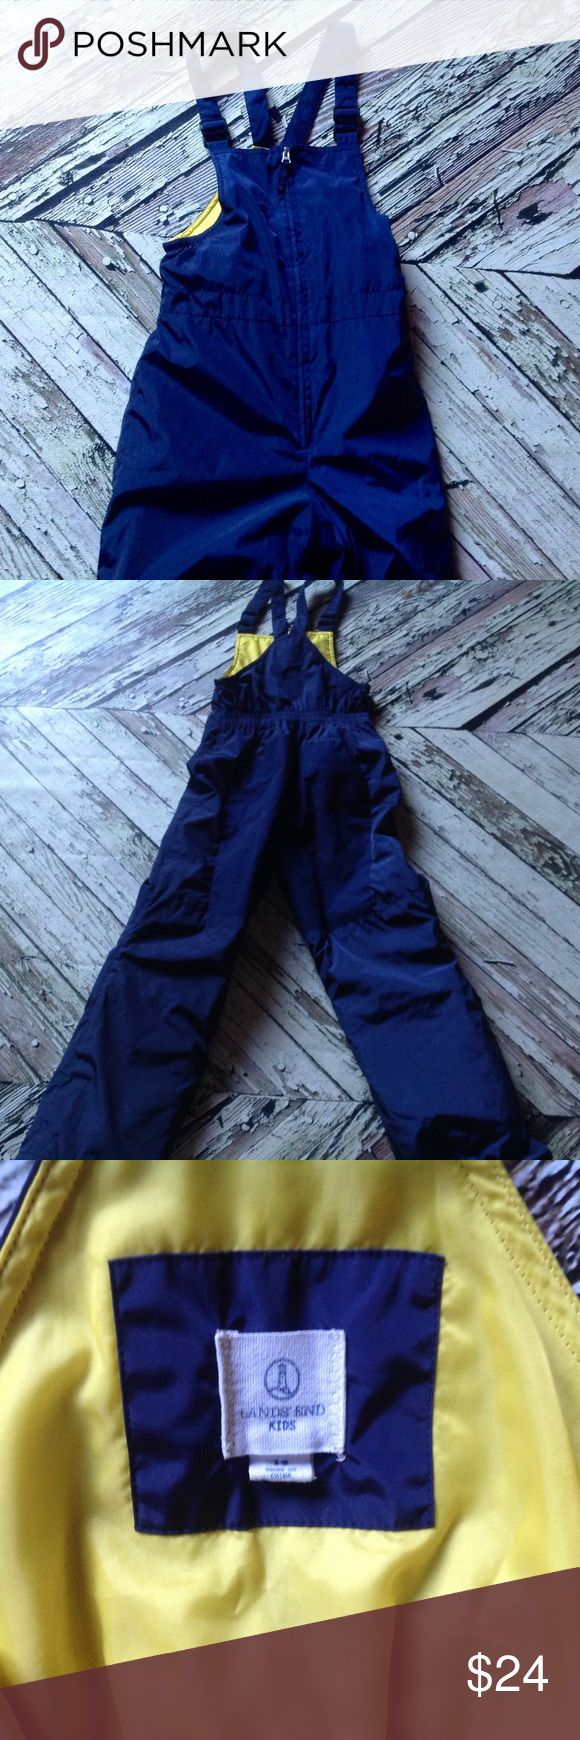 Lands End Kid snow bib unisex Sz 12 navy with yellow lining. Like new condition. Lands end make youth clothing roomier so kids can wear it longer. Unisex Lands' End Bottoms